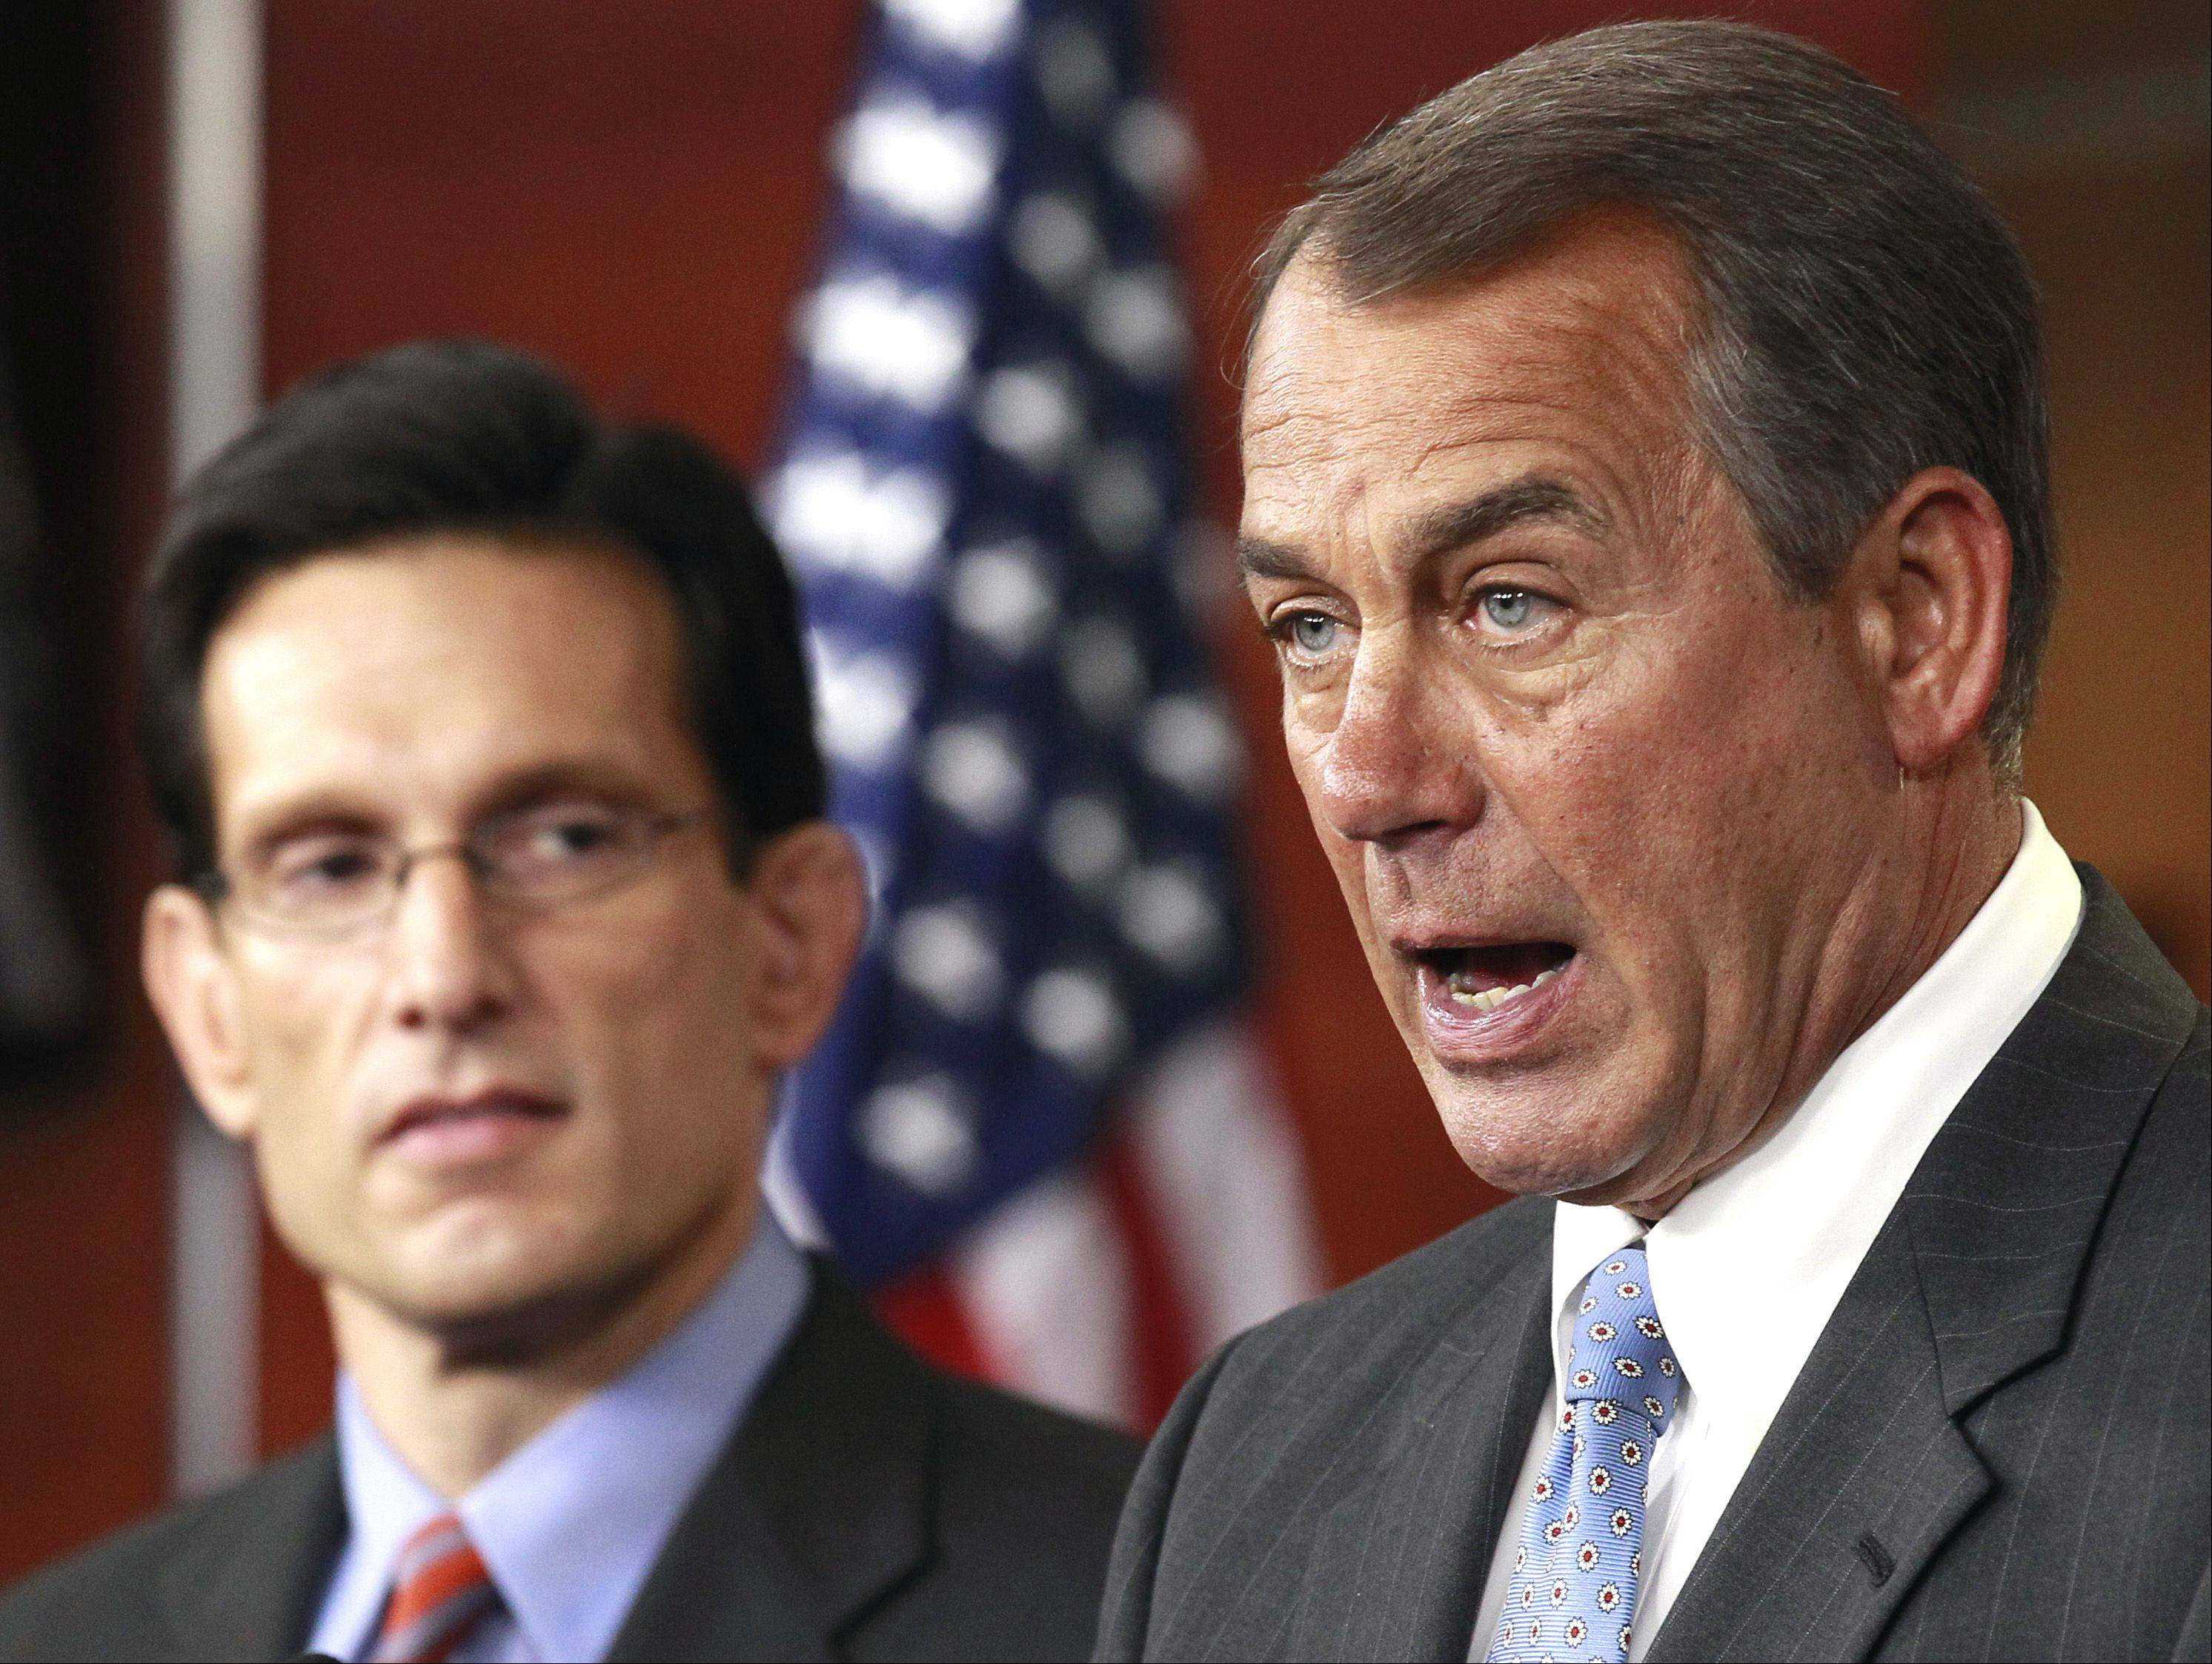 House Speaker John Boehner of Ohio, right, accompanied by House Majority Leader Eric Cantor of Virginia., speaks to reporters on Capitol Hill.